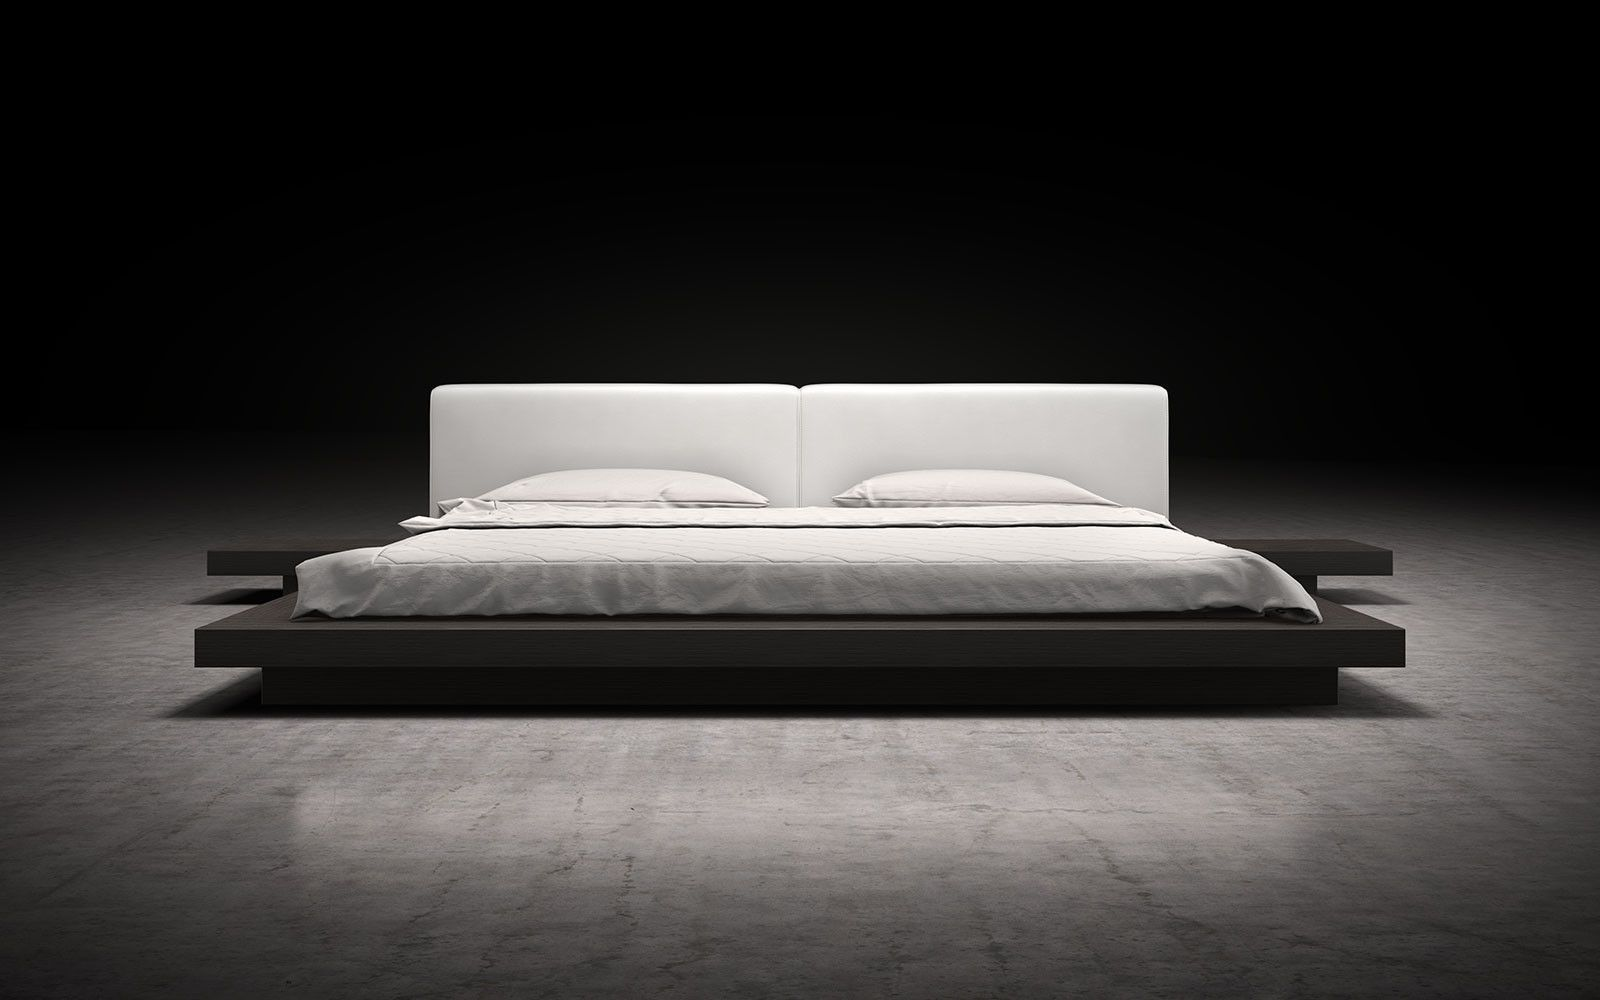 The Asian Inspired Worth White Leather Platform Bed By Modloft Features A Low Profile Hardwood Frame With Matching Symmetrical Nightstands